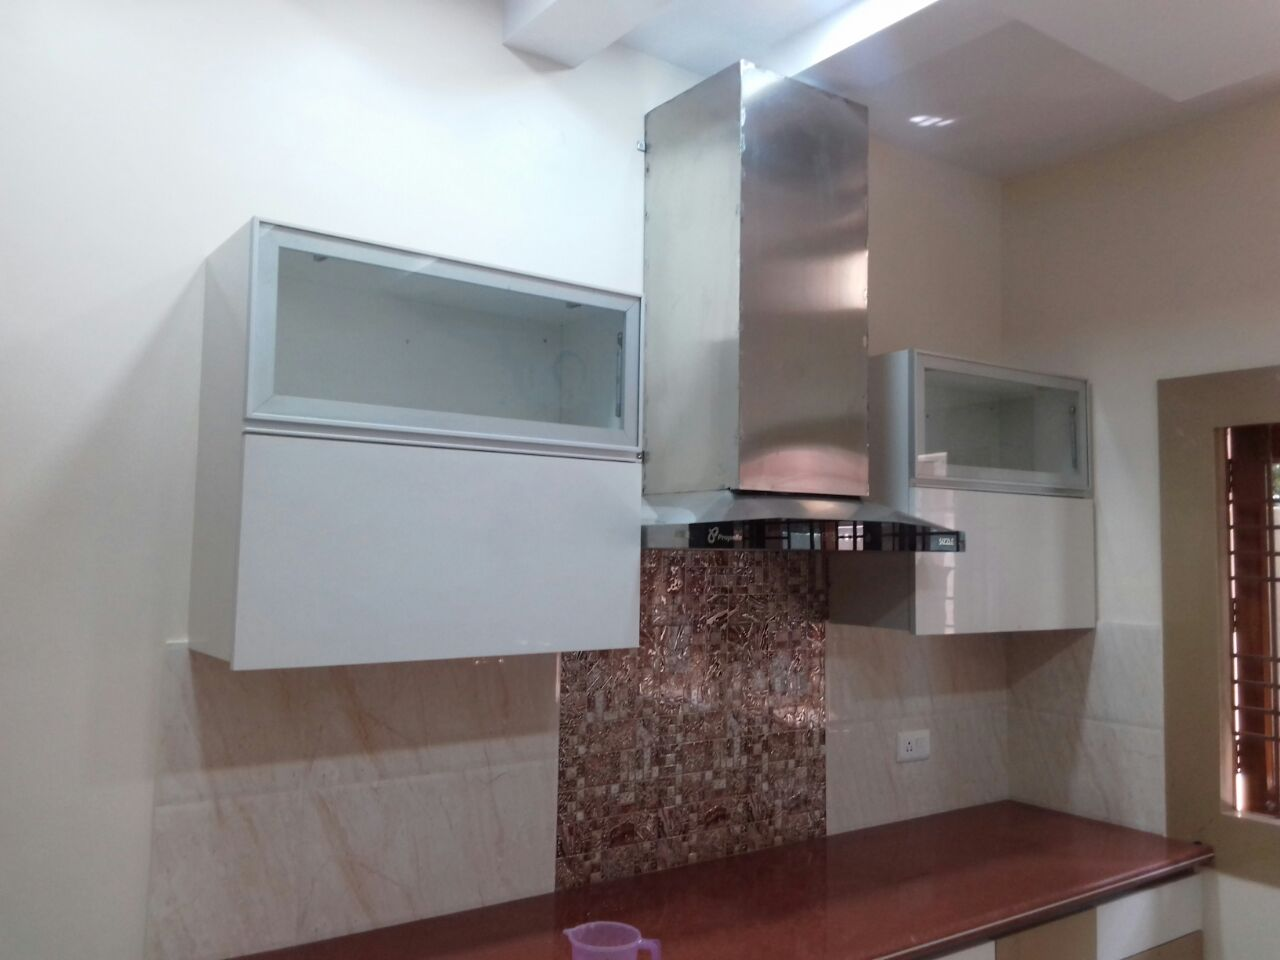 KITCHEN DECOR Hazaribagh Jharkhand  KITCHEN DECOR IN Jharkhand